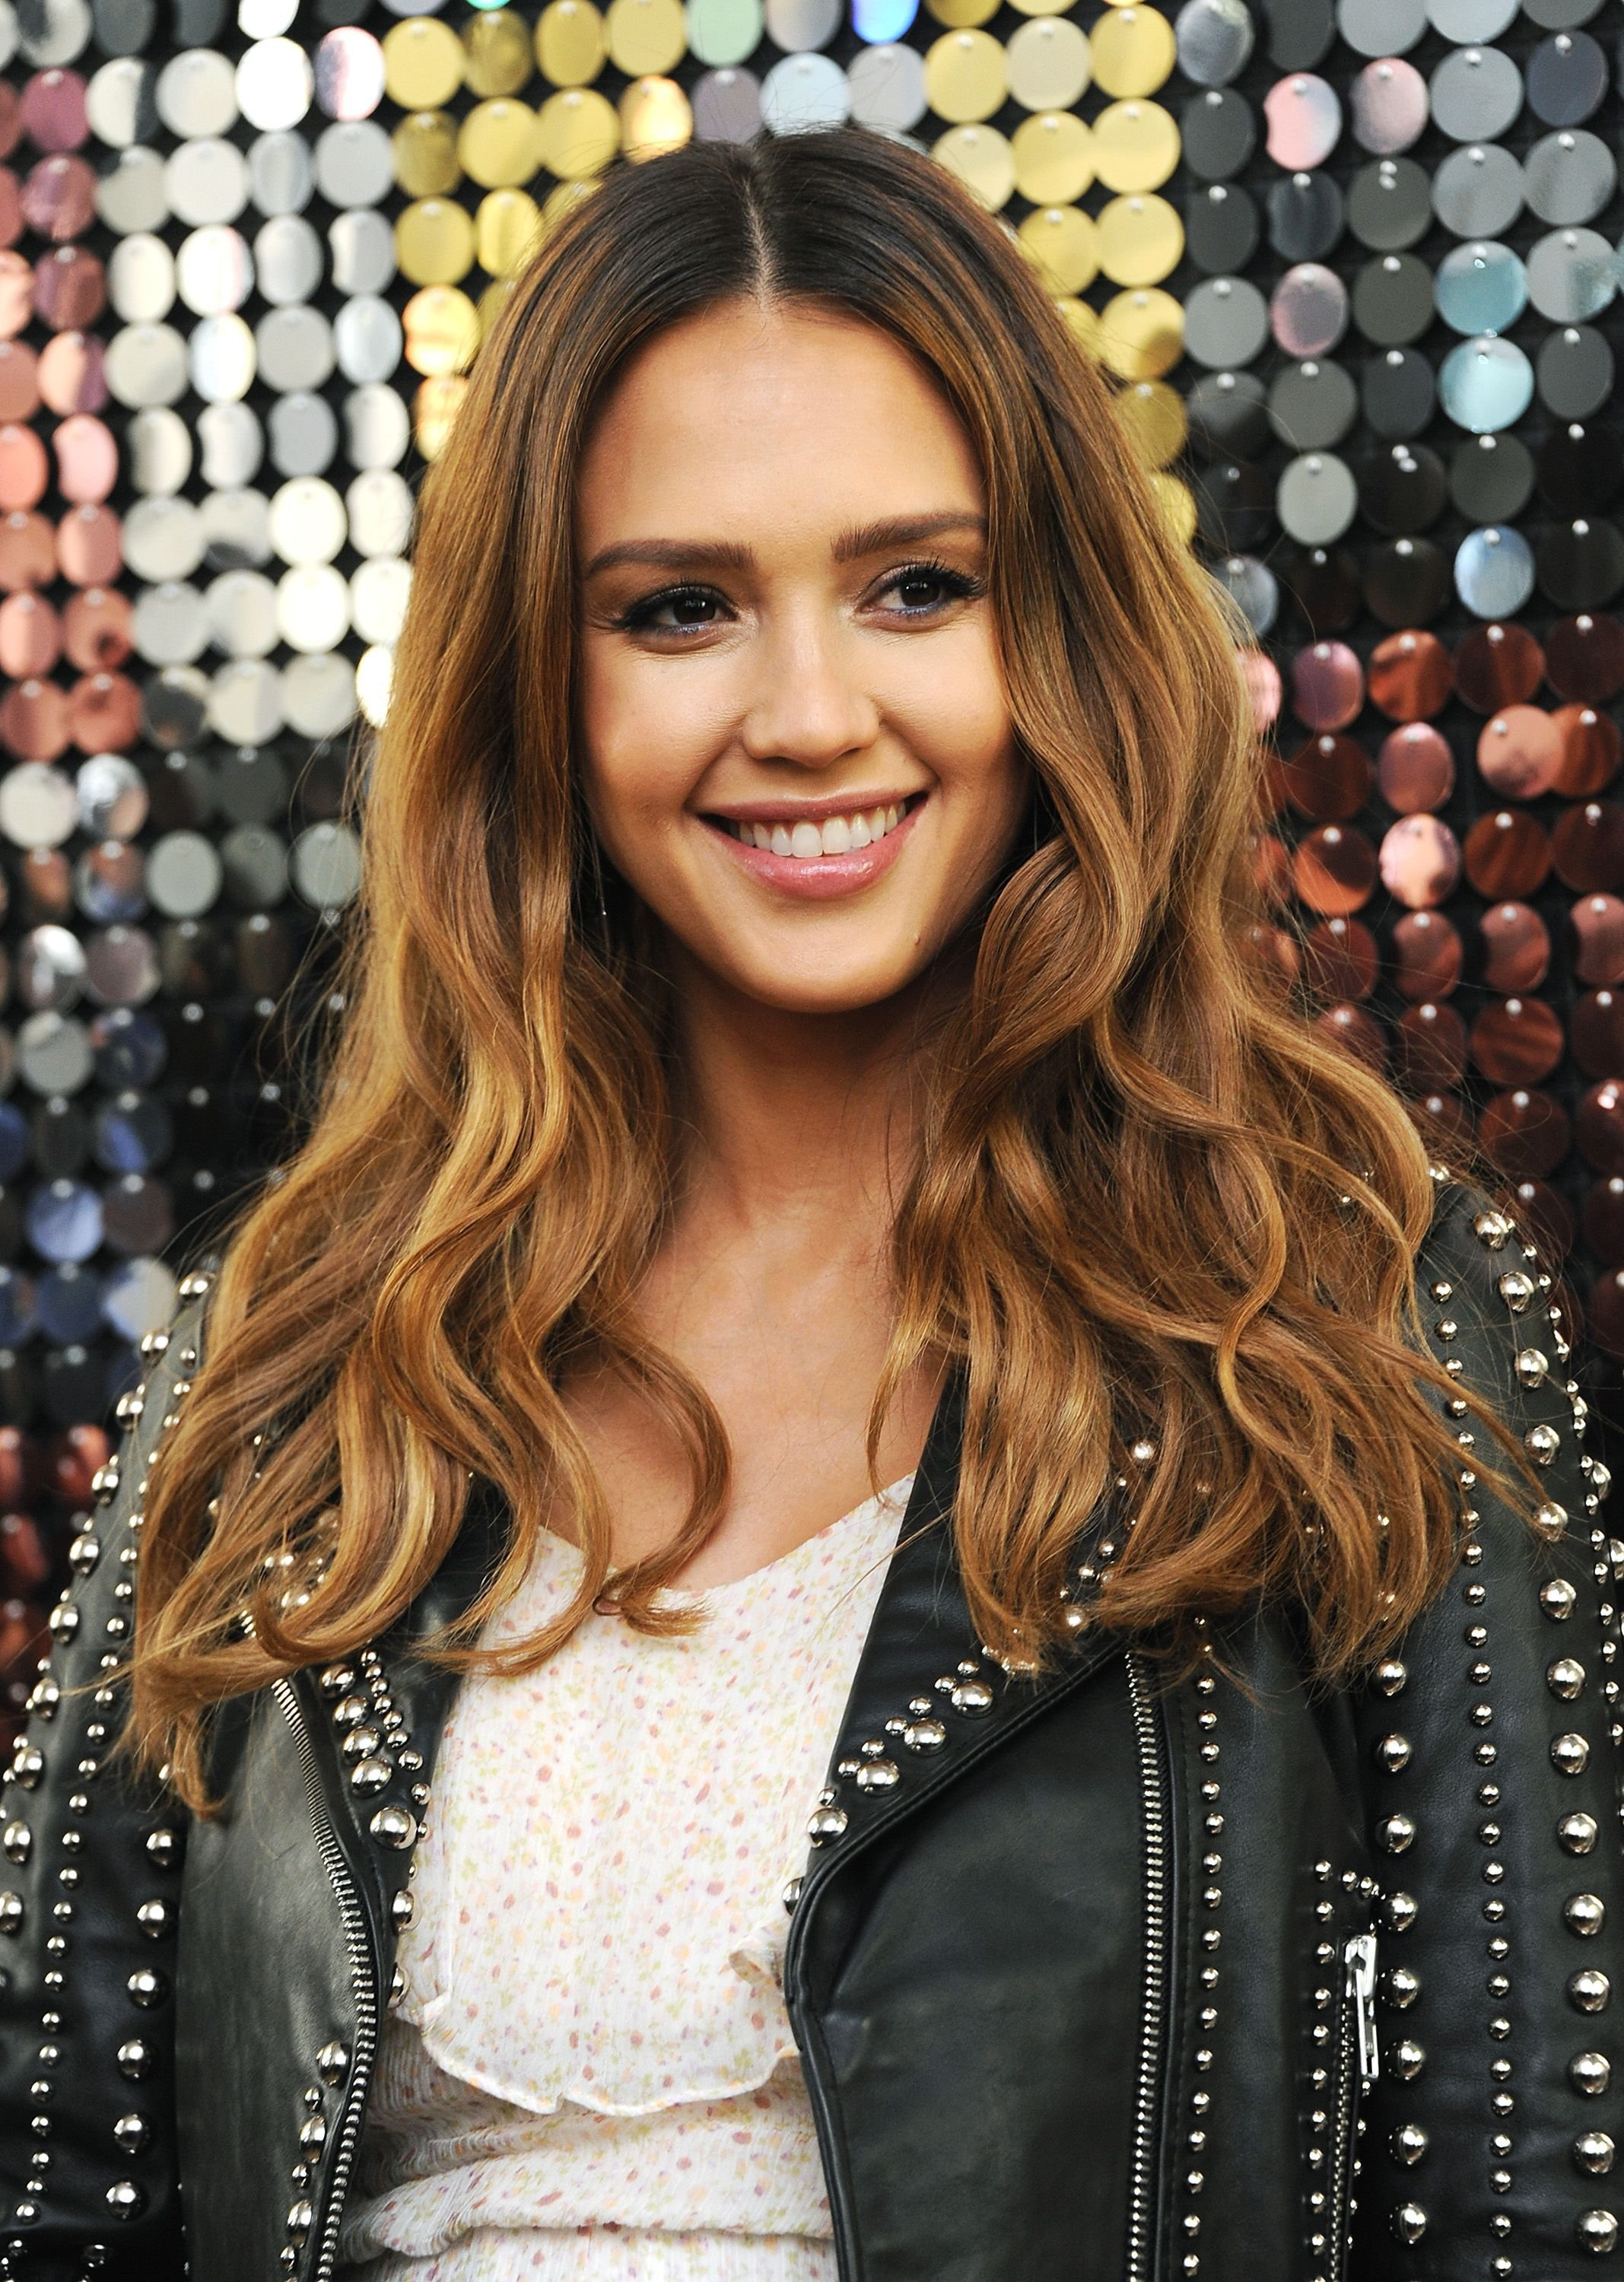 New 18 Light Brown Hair Color Ideas Best Light Brown Hair Ideas With Pictures